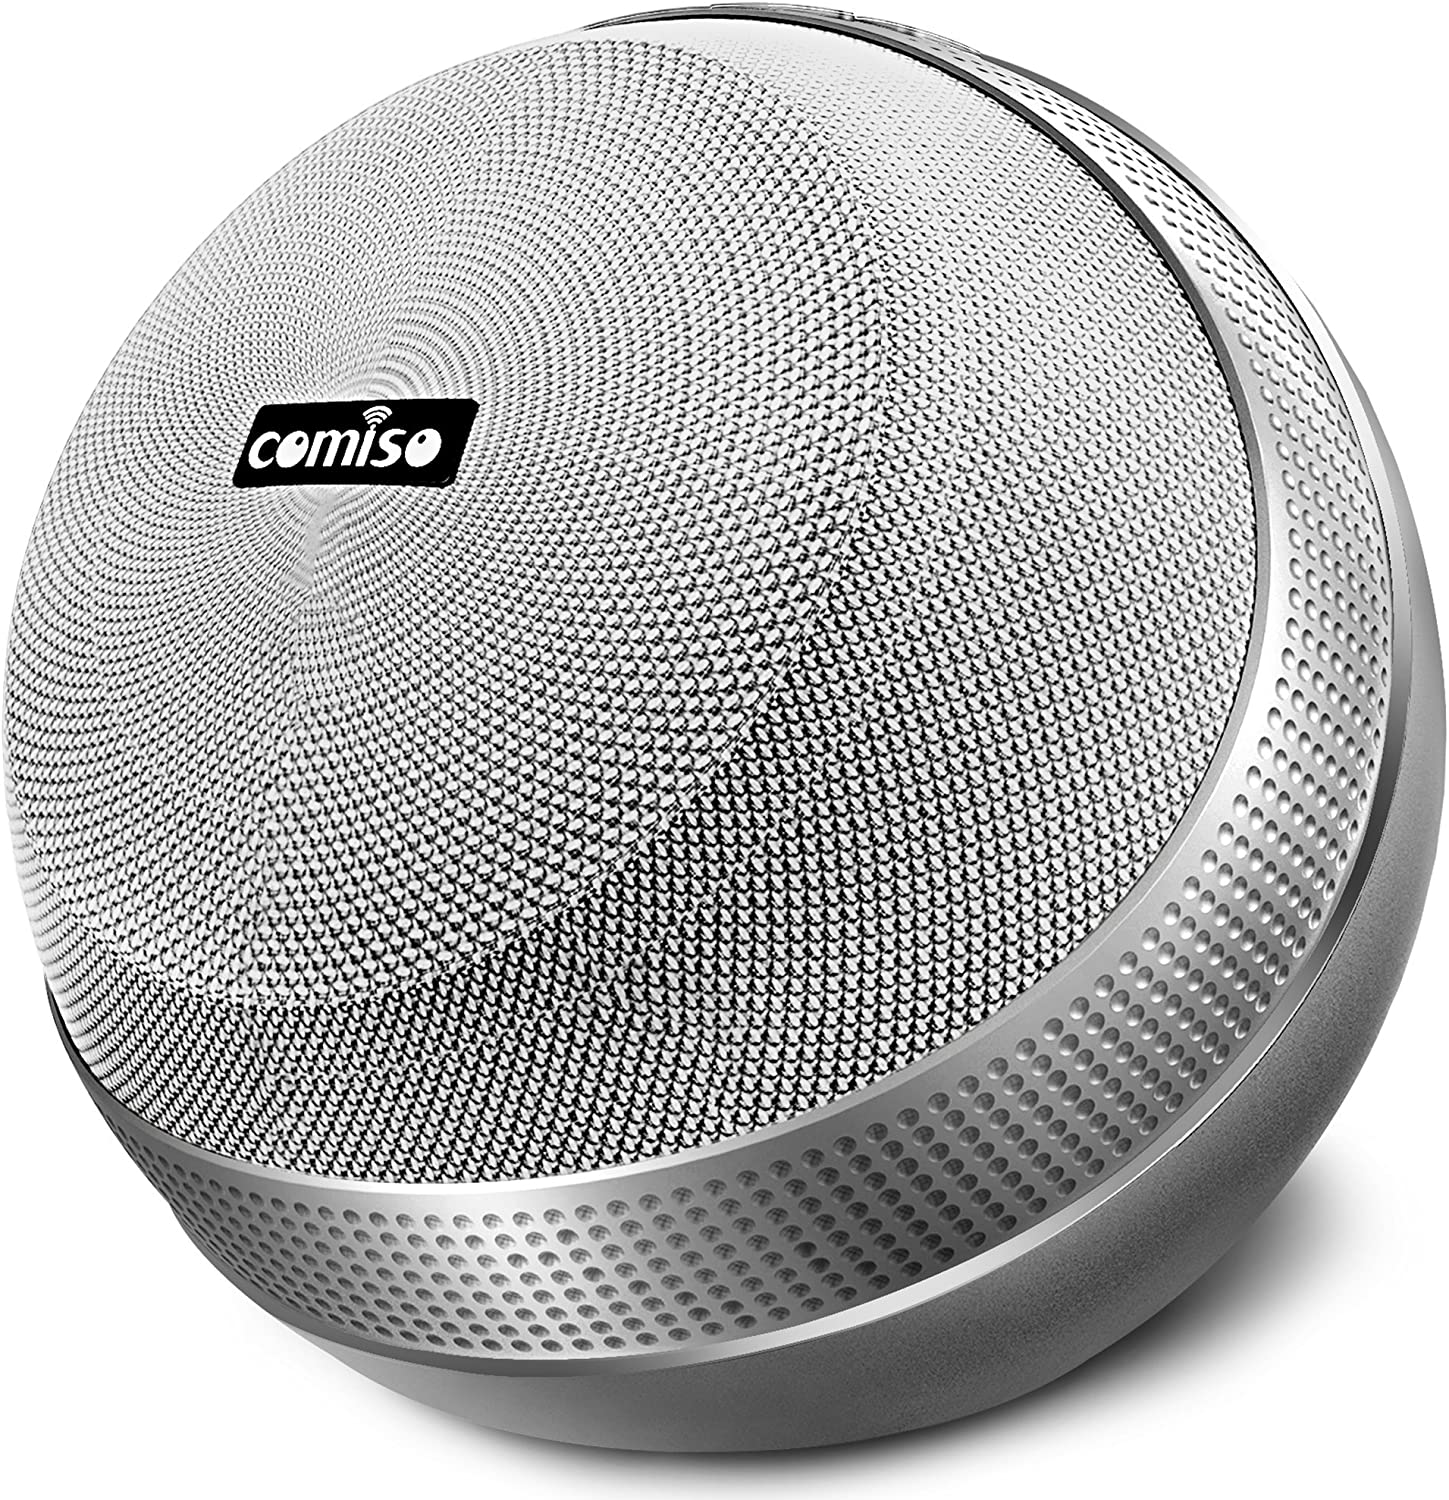 COMISO HomeAudio 40W Bluetooth Speakers, Loud Dual Driver Hi-Fi Wireless Bluetooth Speaker with HD Audio and Enhanced Bass, Wireless Stereo, Built in Mic, Aux Input, Long-Lasting Battery Life (Grey)